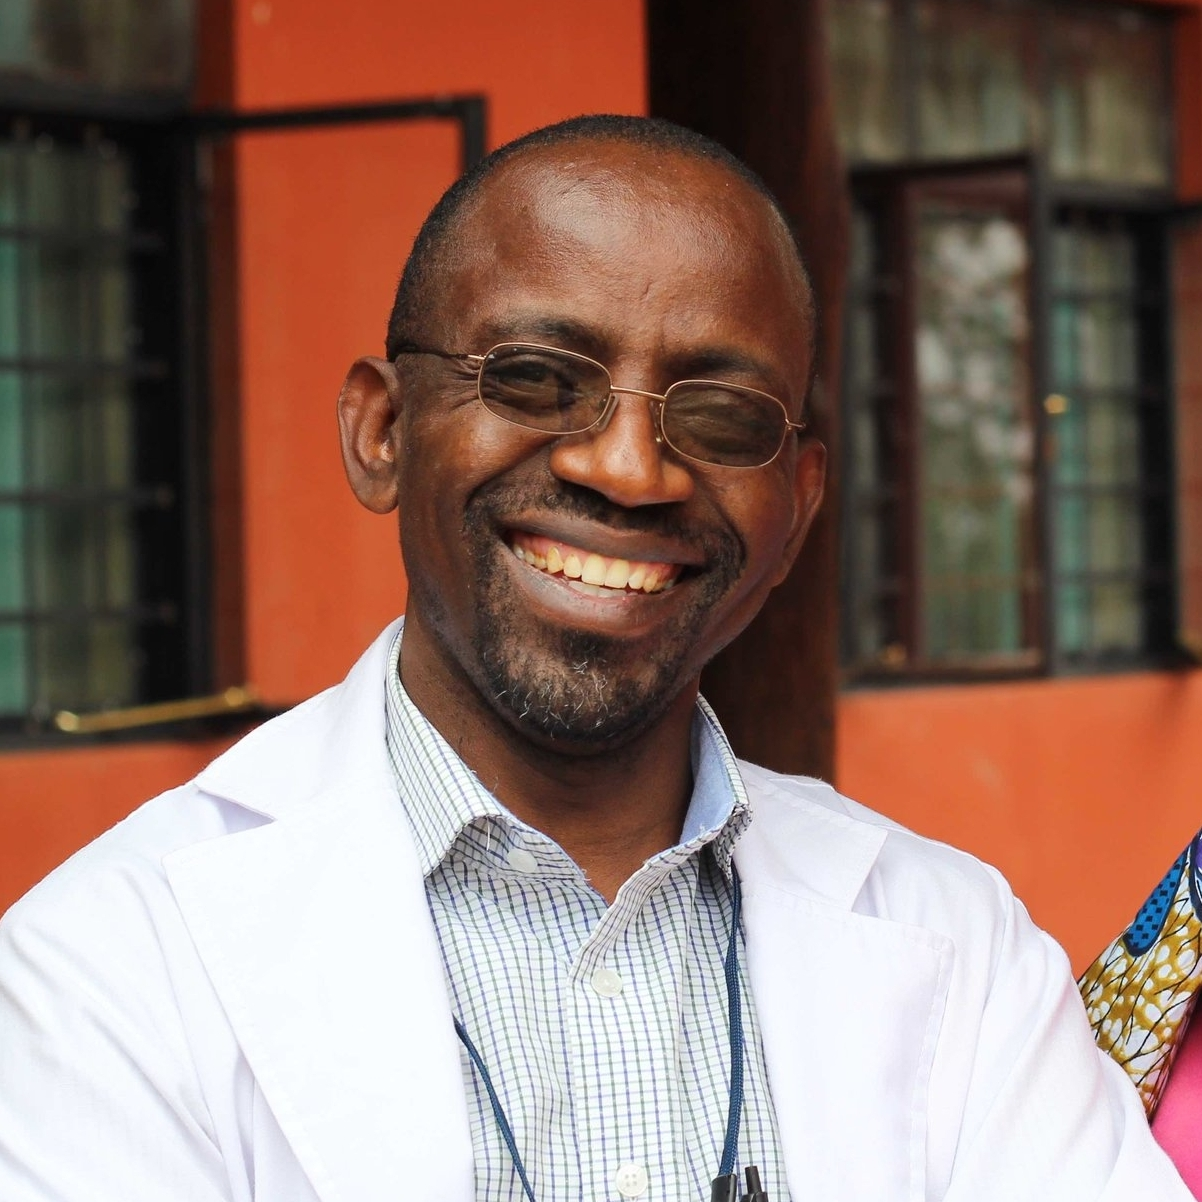 Dr. Msuya is applying for an OBGYN residency abroad